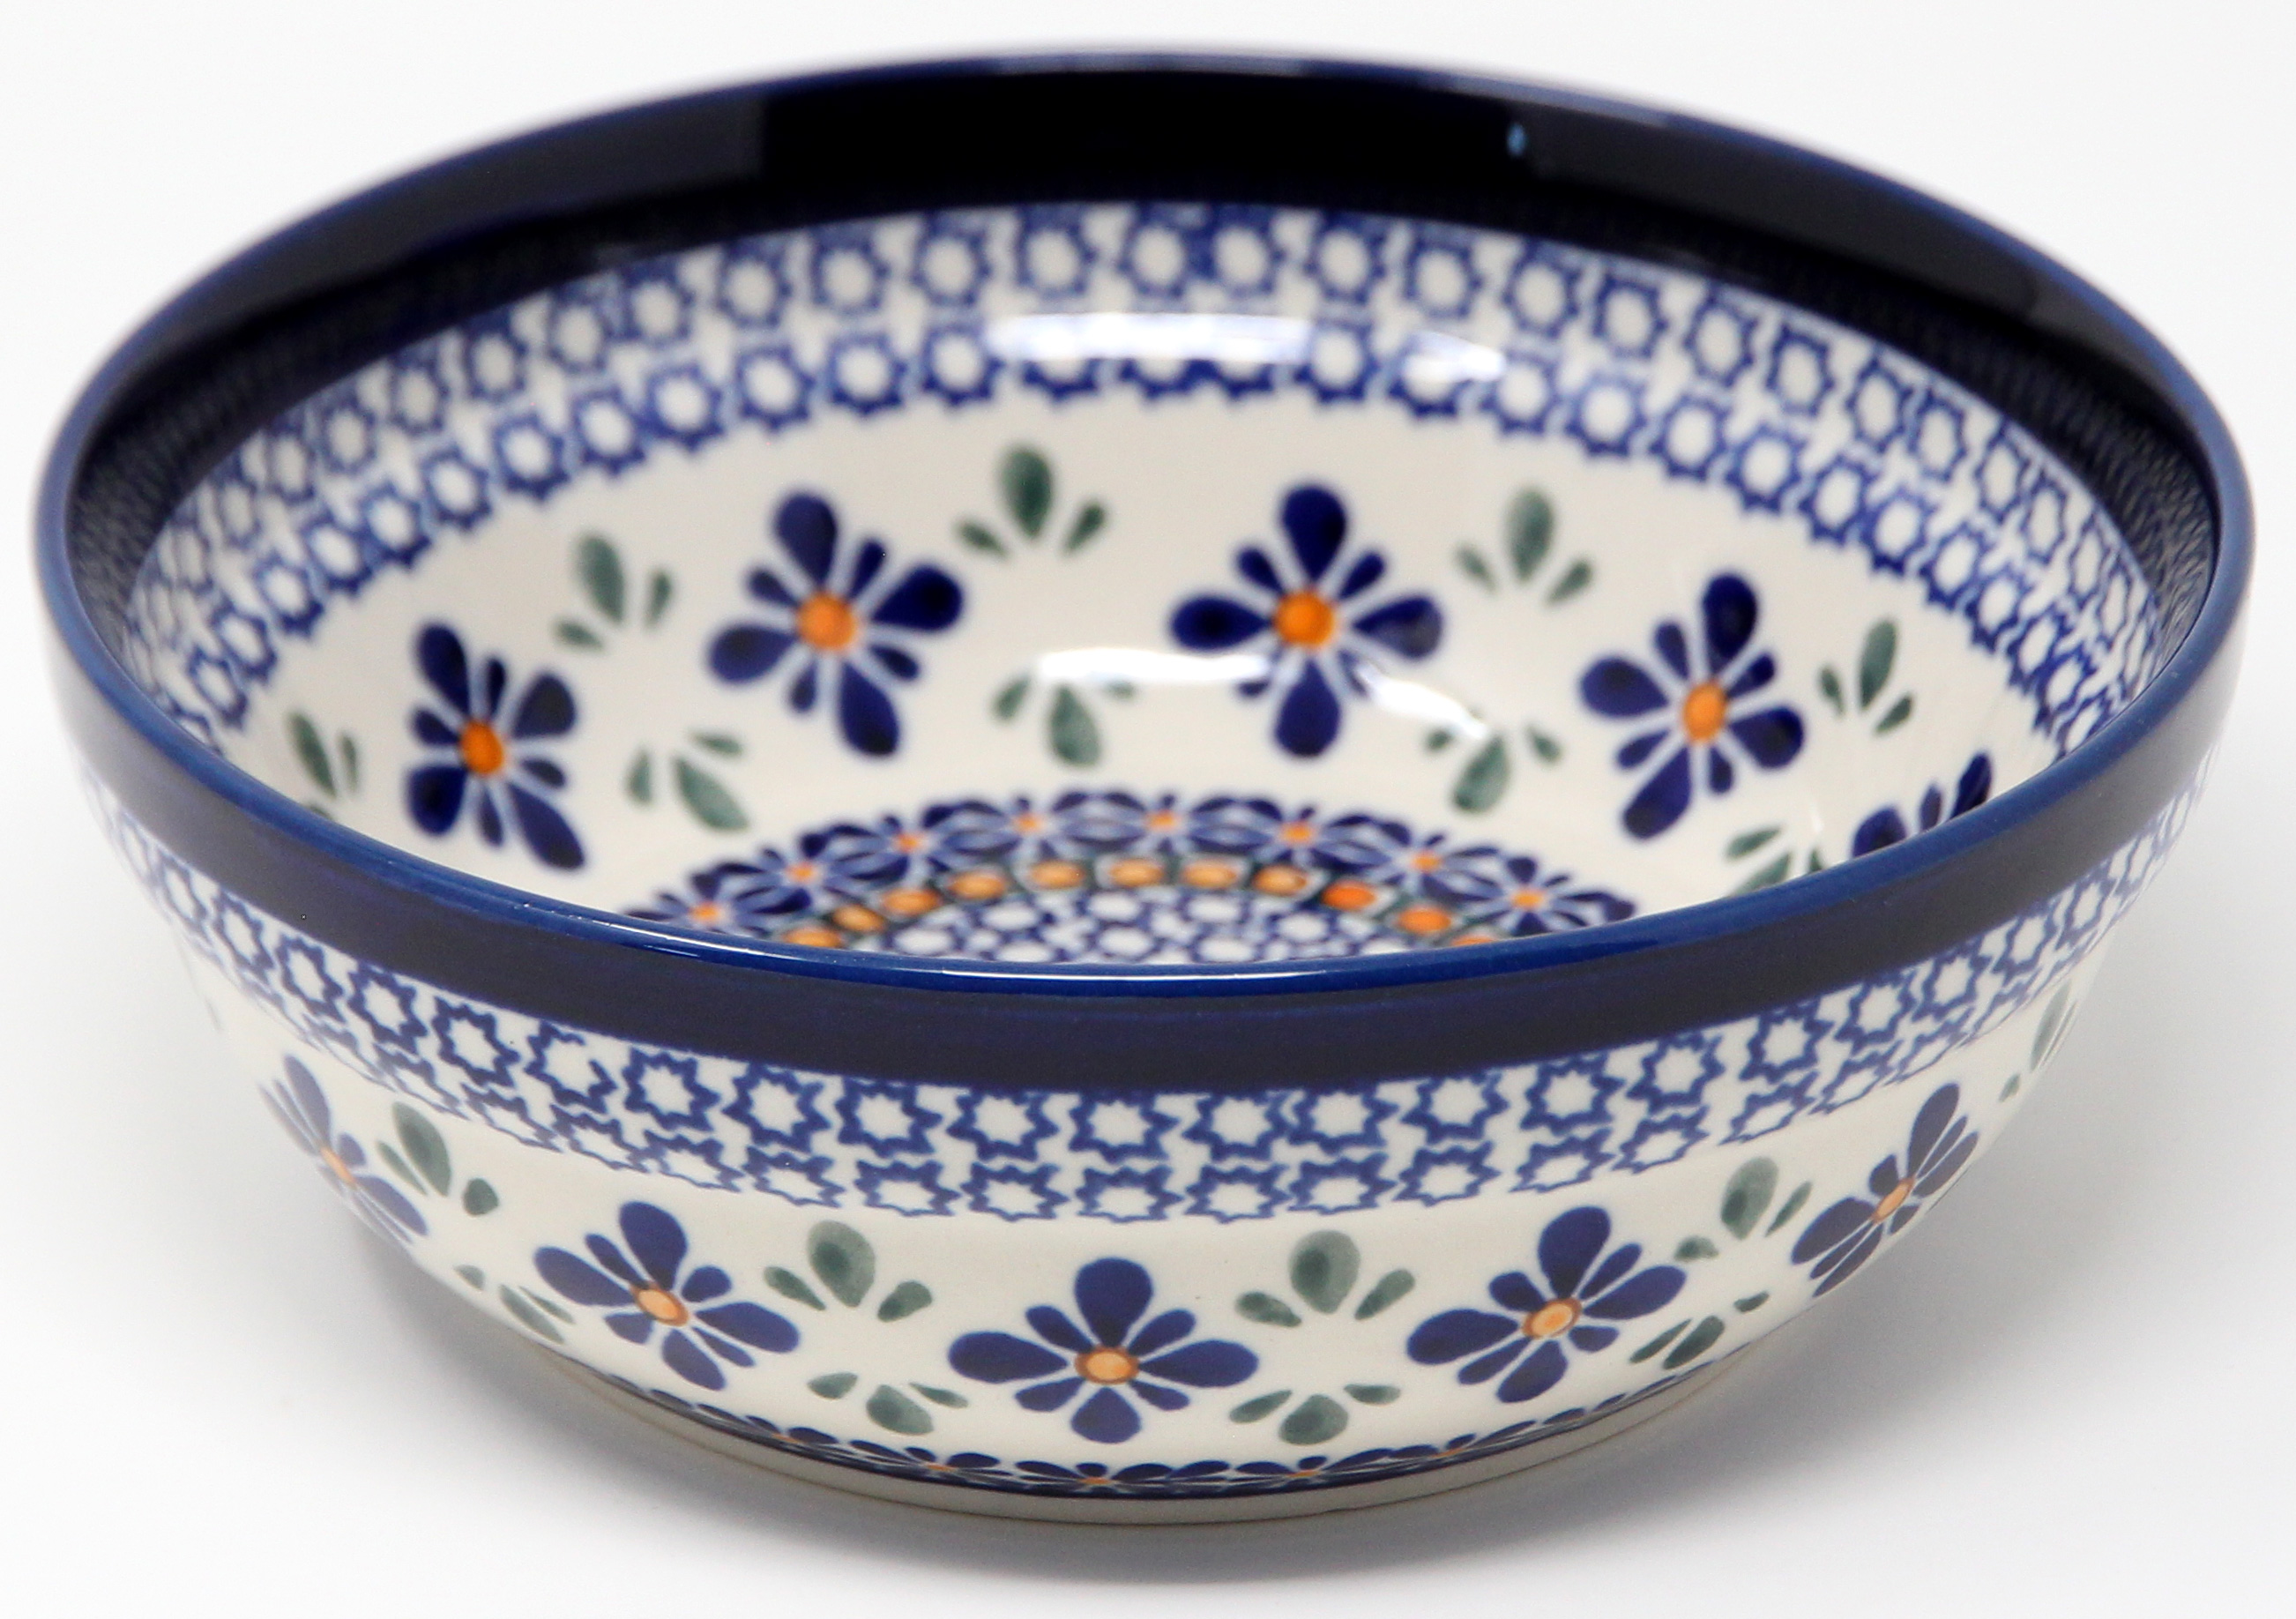 Cereal / Salad Bowl Decoration Inside in Mosaic Flower Polish Pottery Pattern